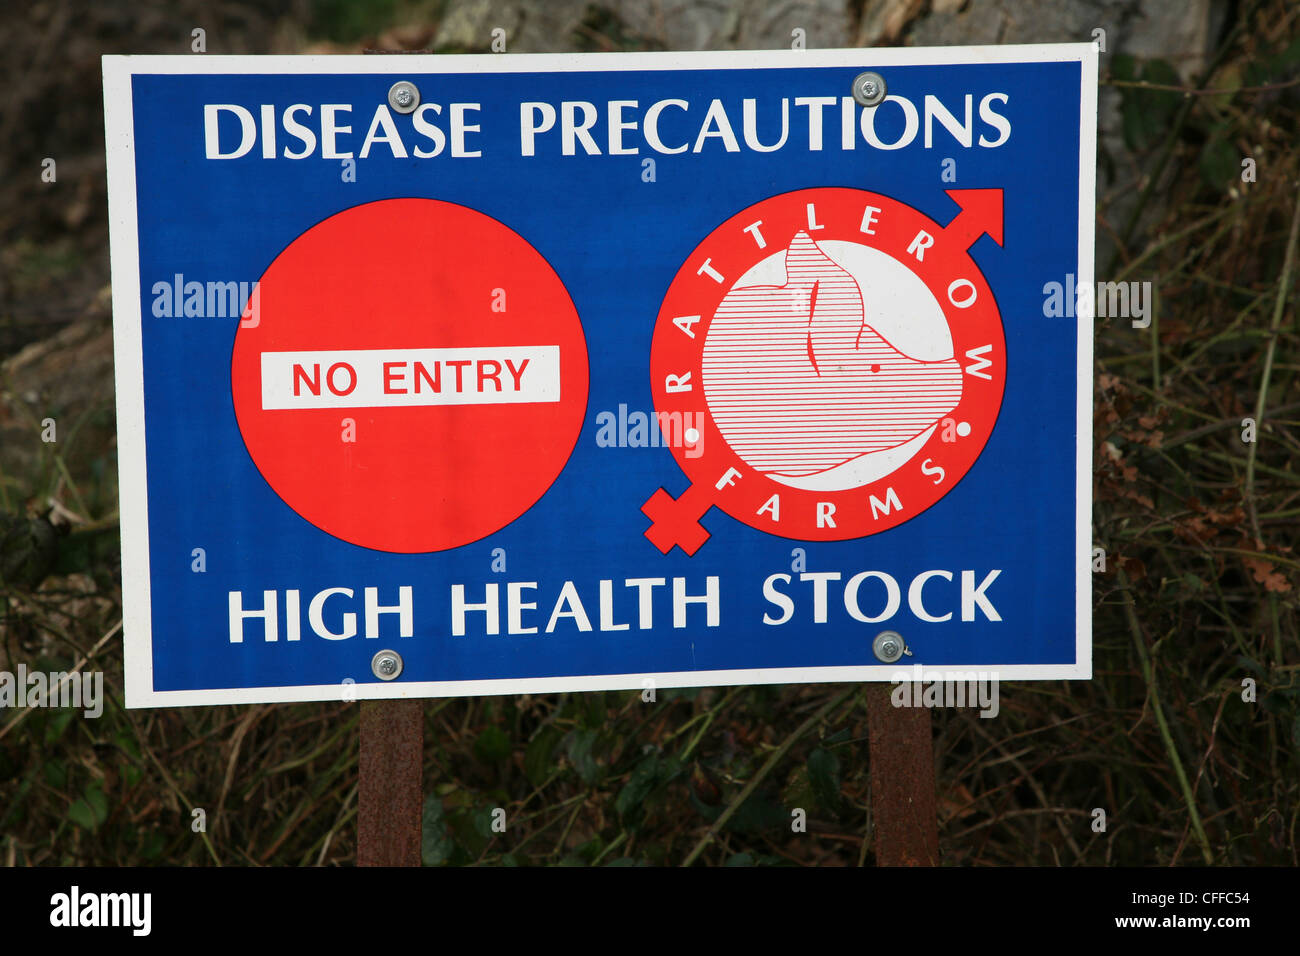 Disease precautions high health stock no entry sign close up - Stock Image